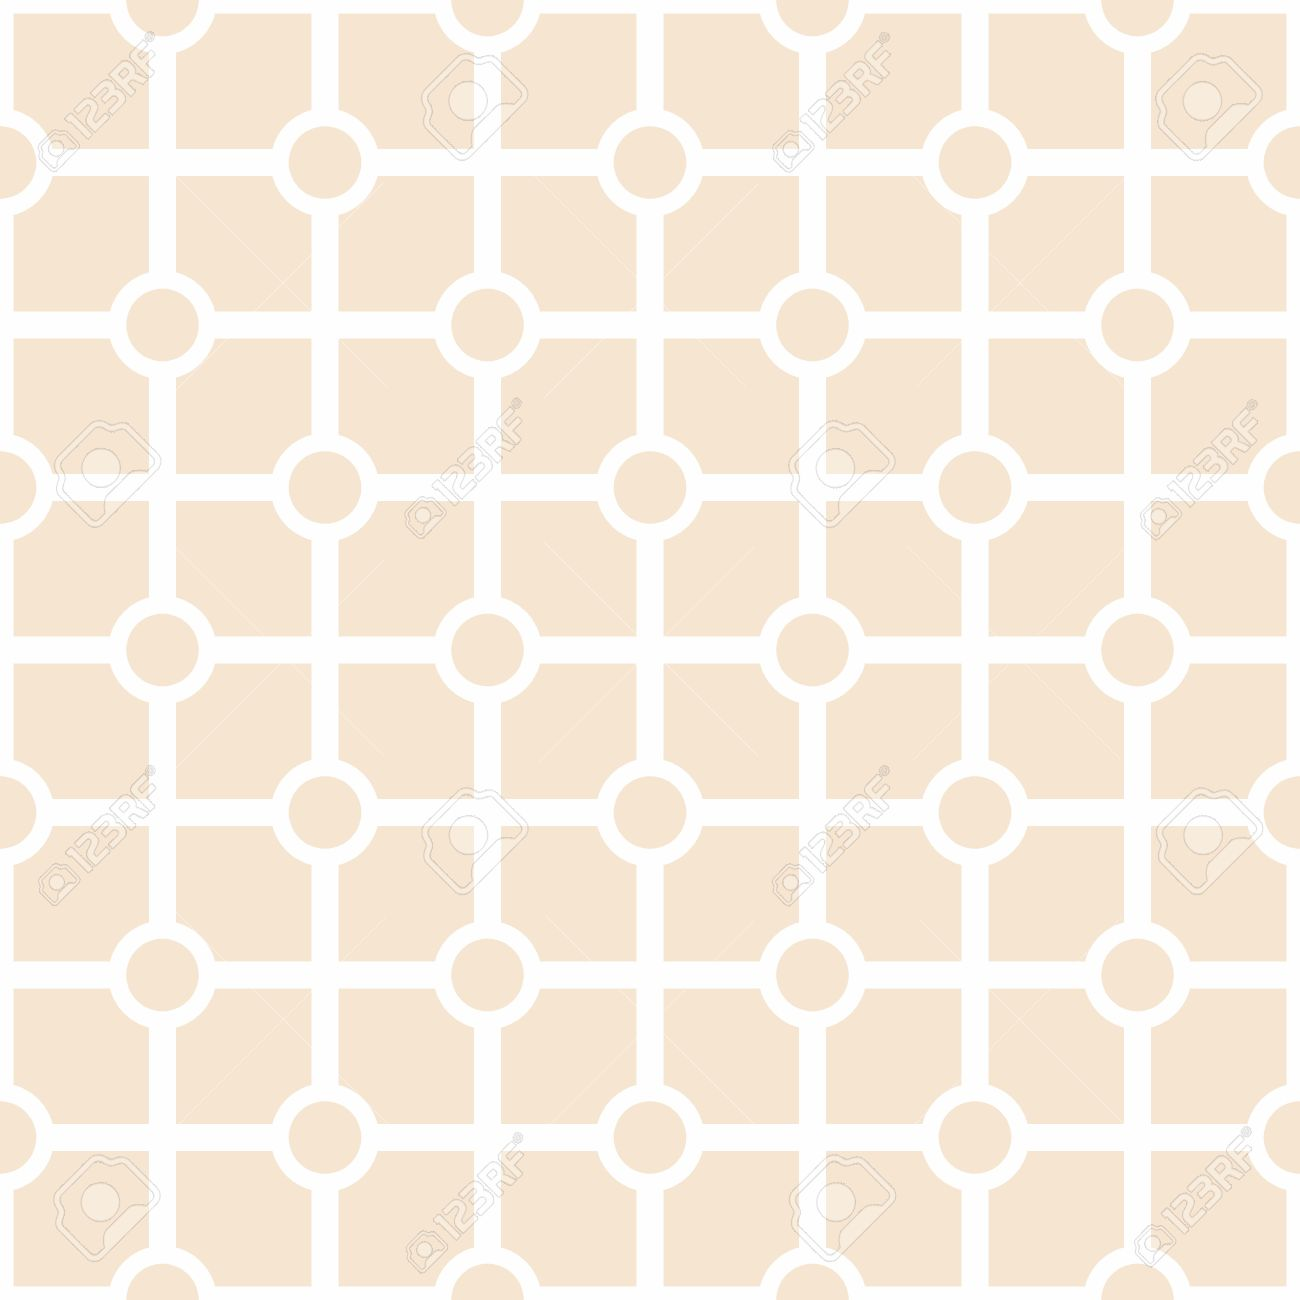 Tile Vector White And Pink Pattern Or Seamless Geometric Background